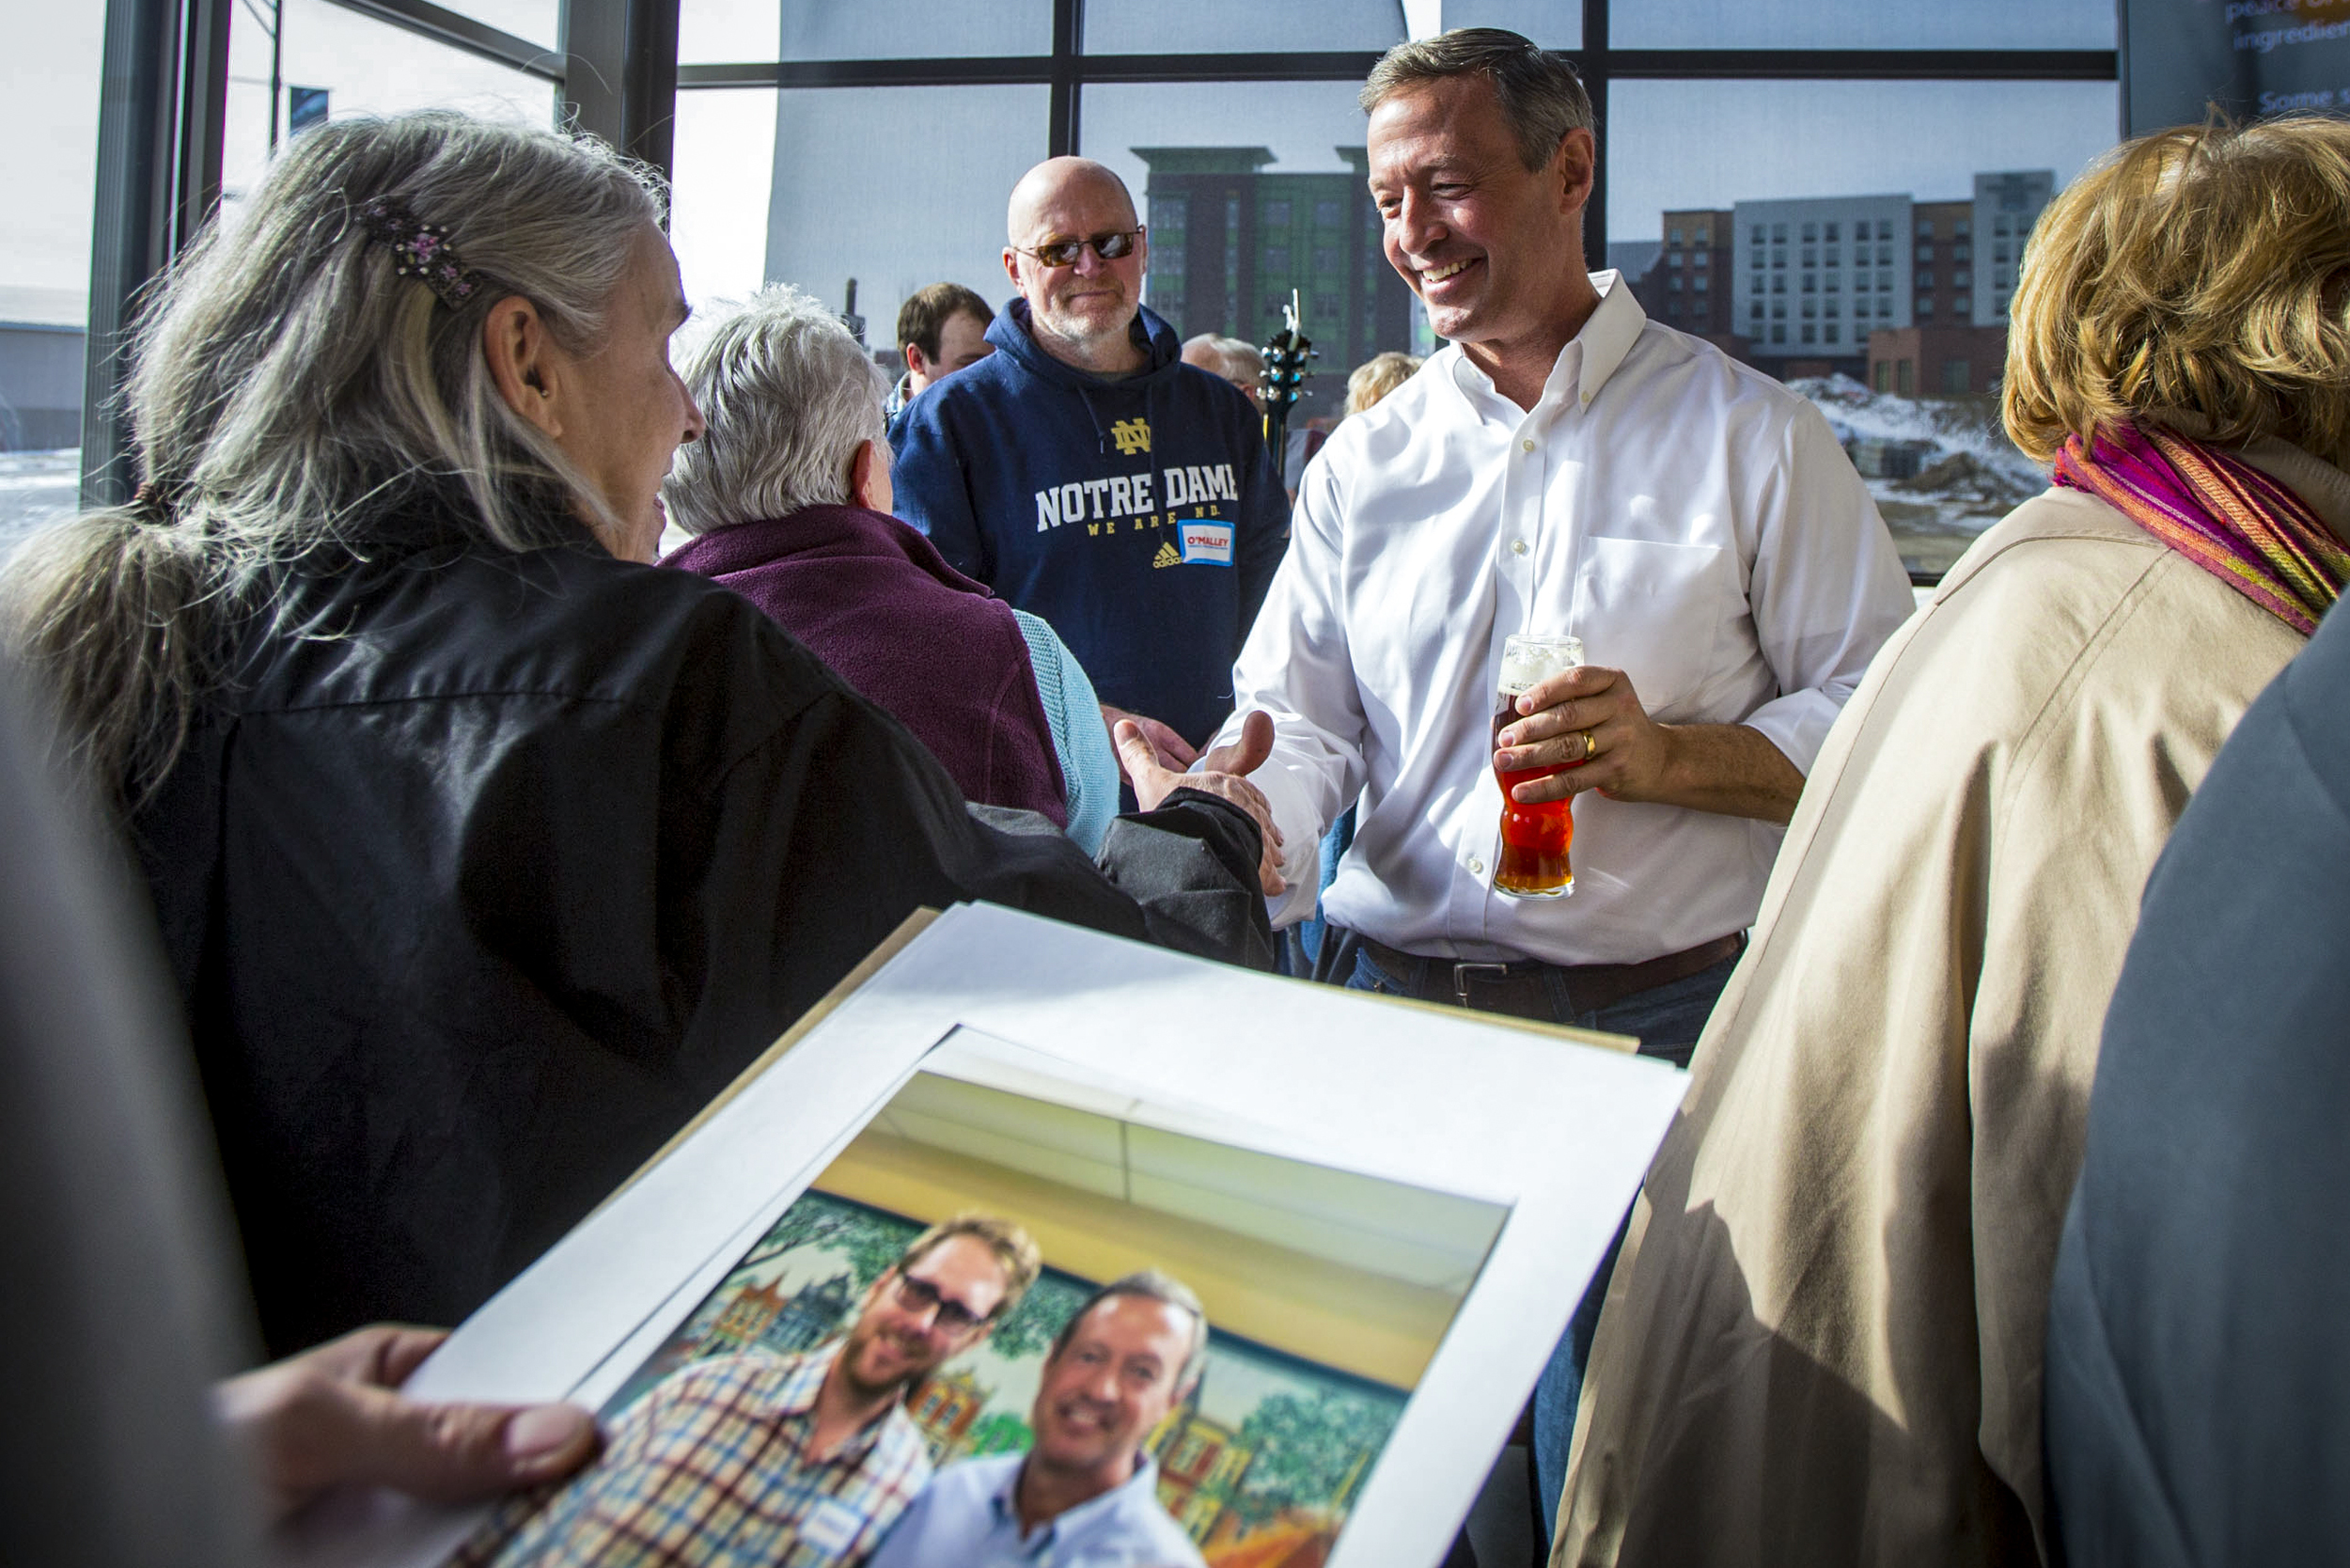 """Presidential candidate Martin O'Malley shakes hands and meets guests after speaking at Backpocket Brewing in Coralville, Illinois, Saturday Jan. 23, 2016. The former Maryland governor made a stop as a part of """"O'Malley Unplugged: The New Leadership Tour"""" with only nine days left until the Iowa Caucus."""